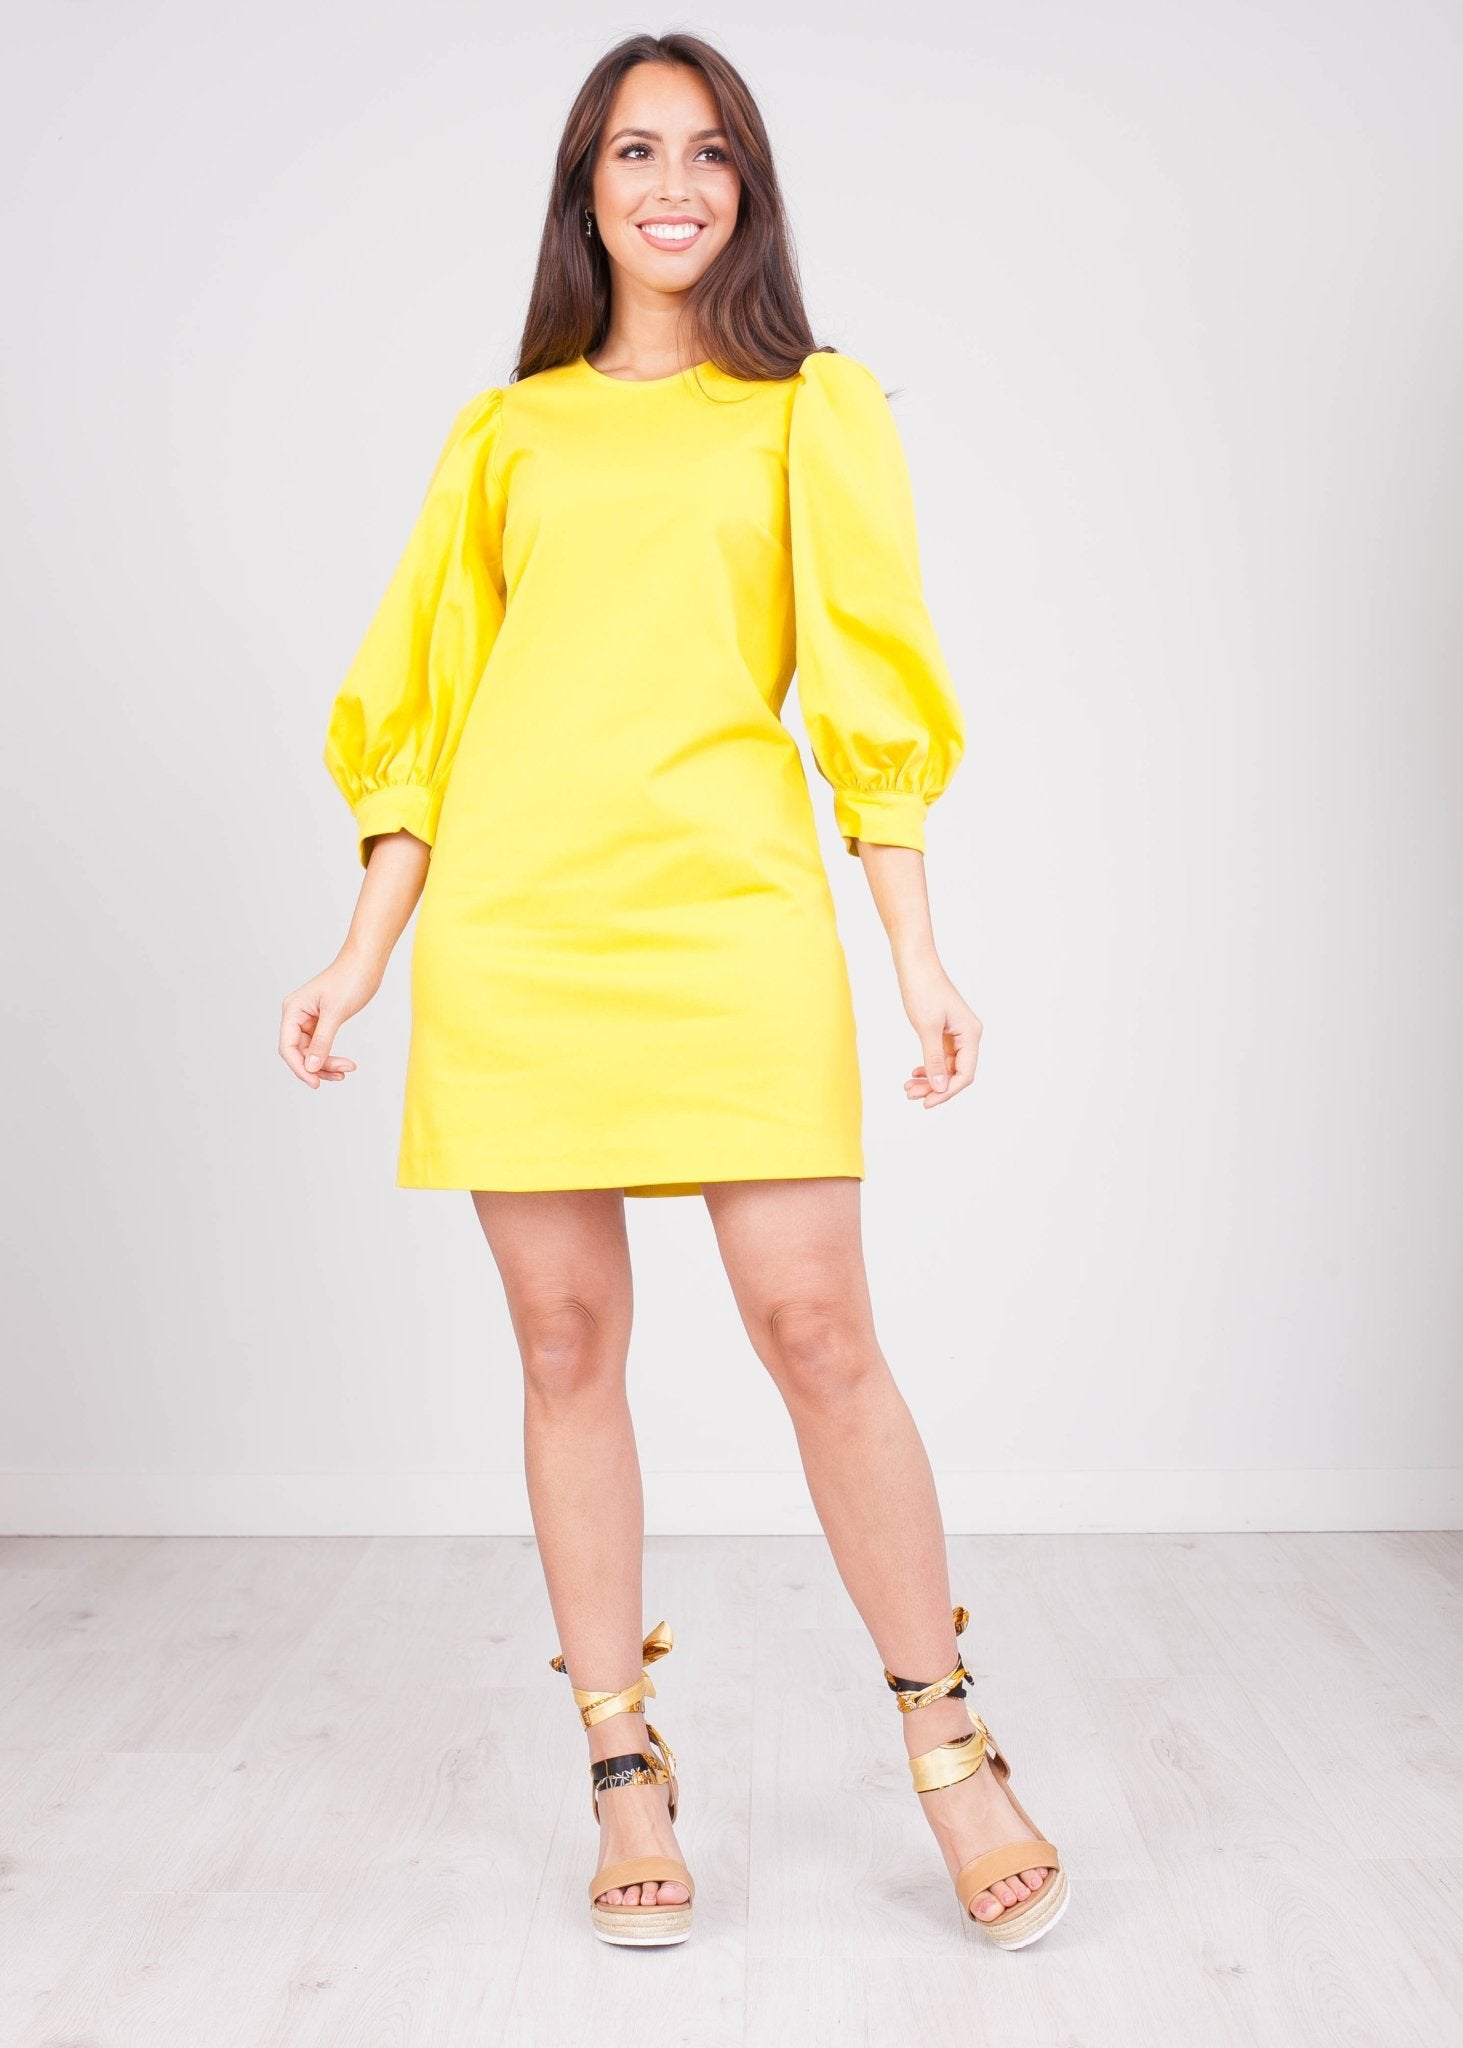 Charlee Yellow Dress - The Walk in Wardrobe